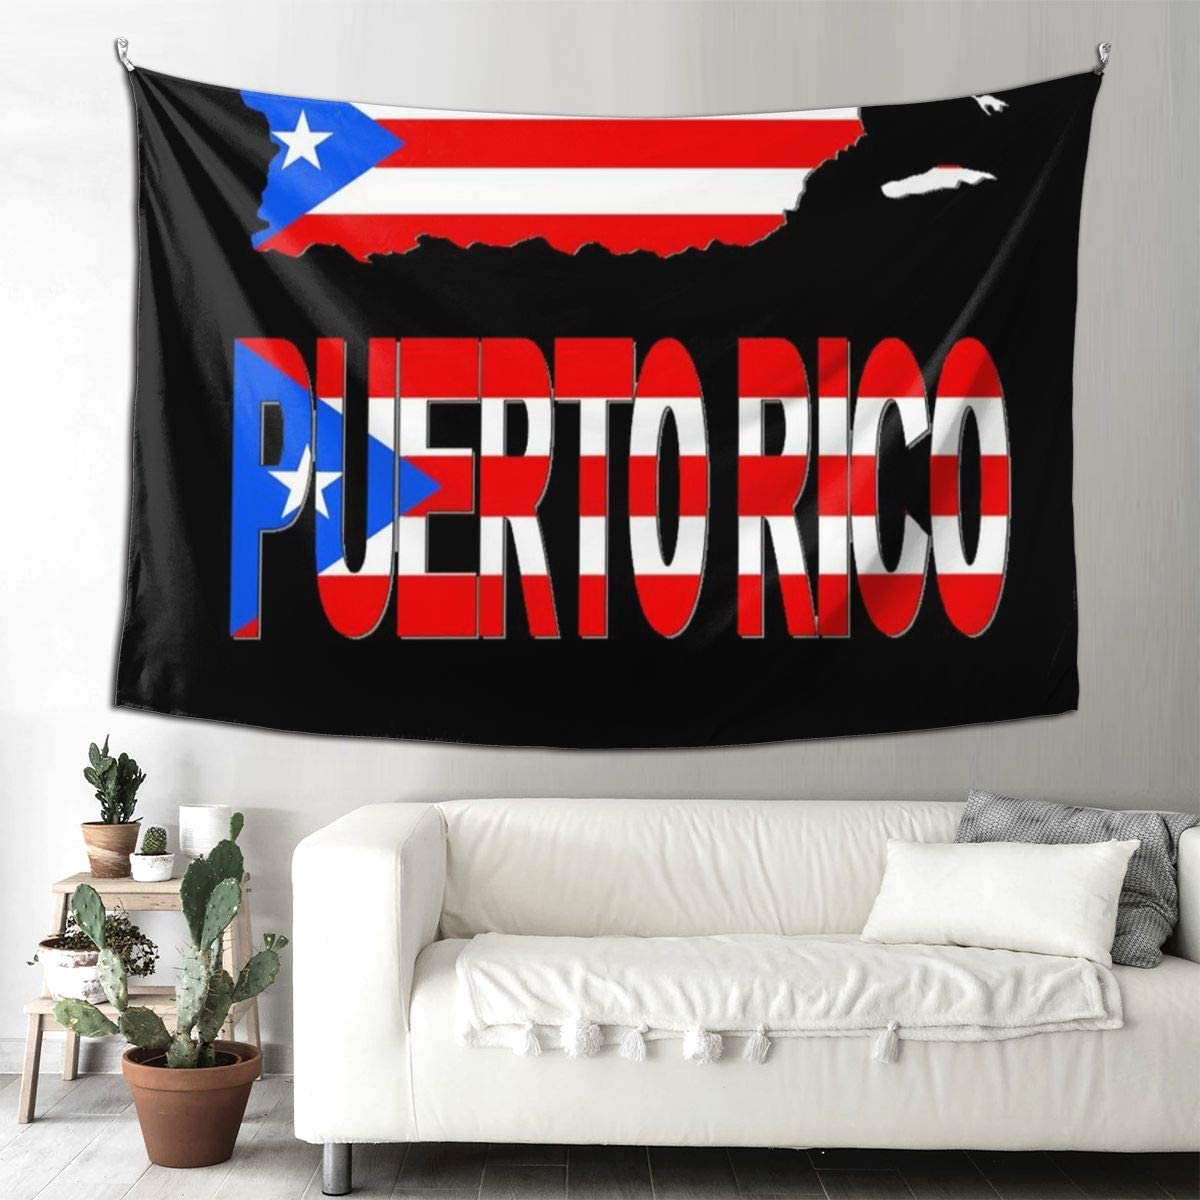 Puerto Rico Map Flag Wall Hanging Tapestries Black & White Wall Blanket Wall Art for Living Room Bedroom Home Decor 90x60 Inches